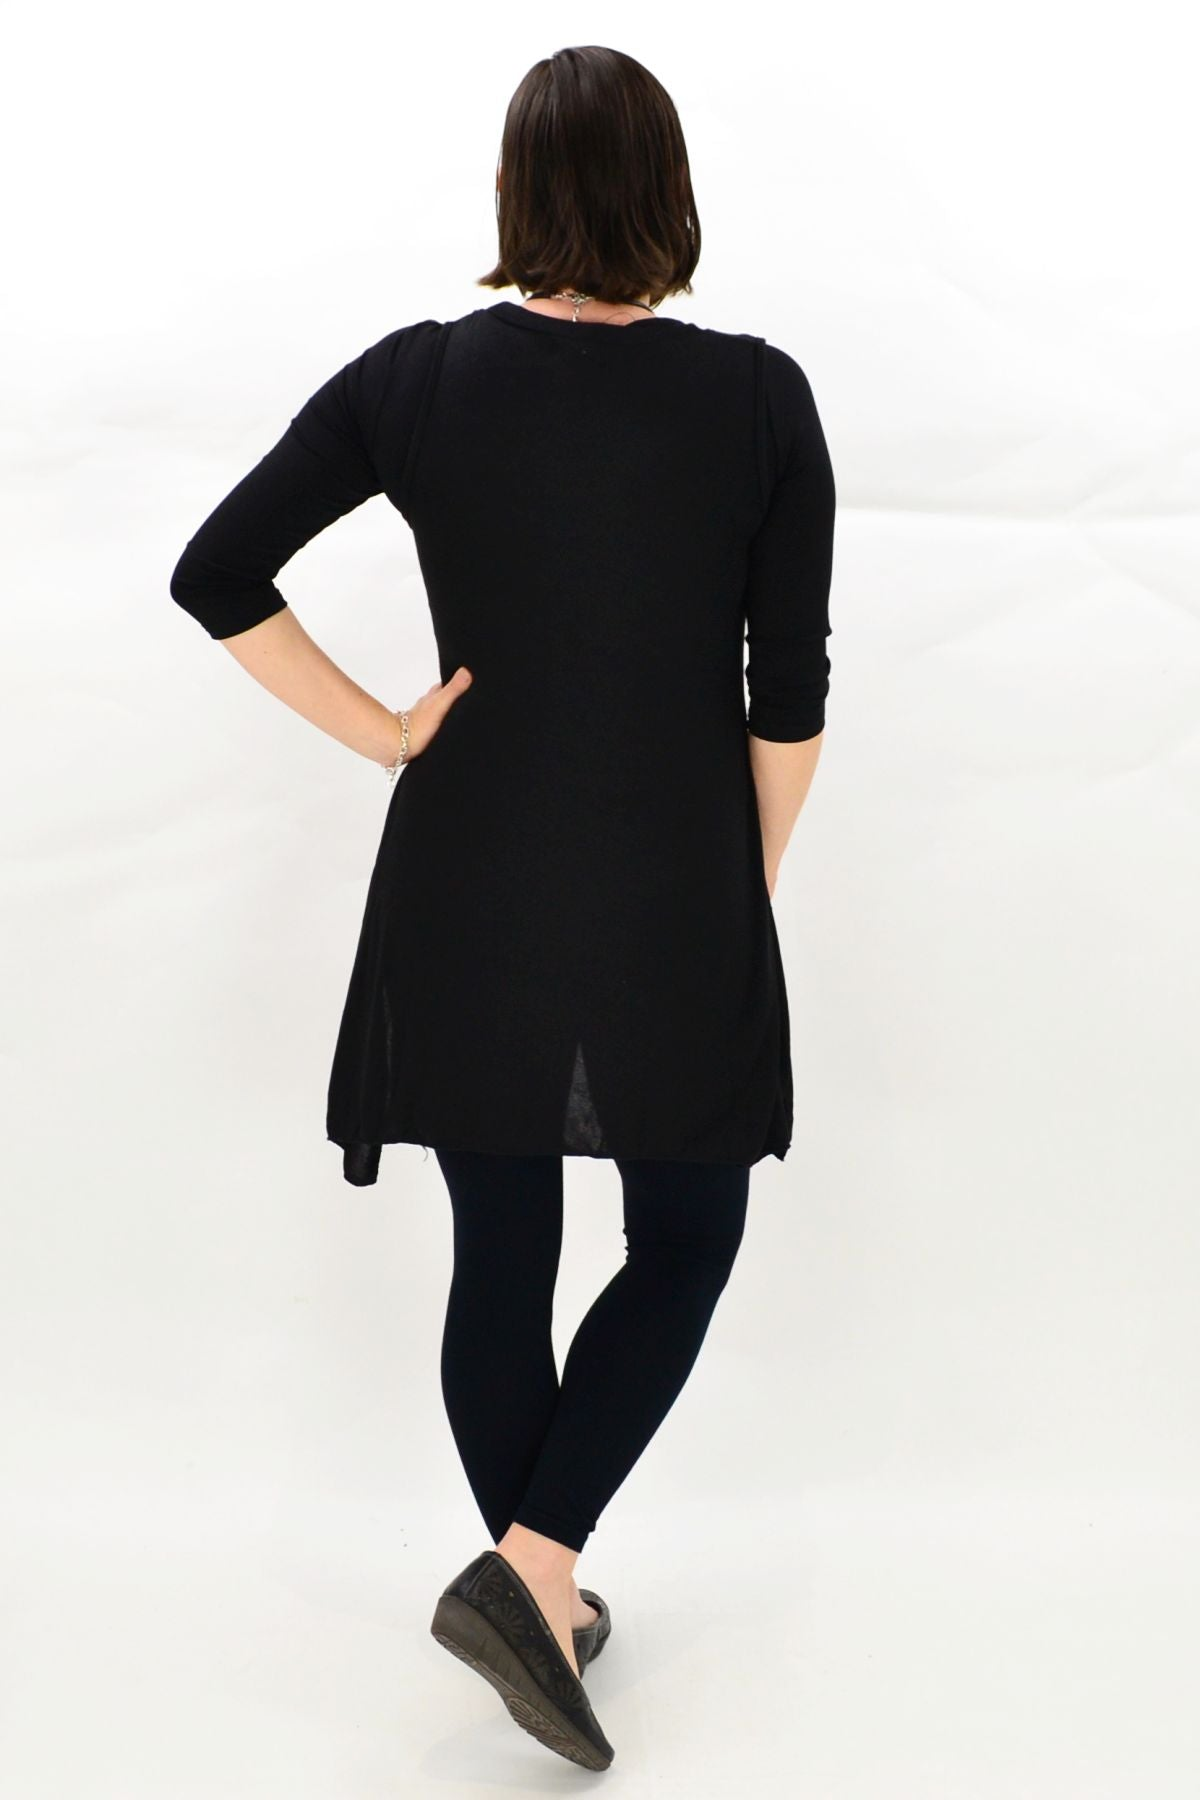 Sleeveless Black Layla Winter Tunic Top